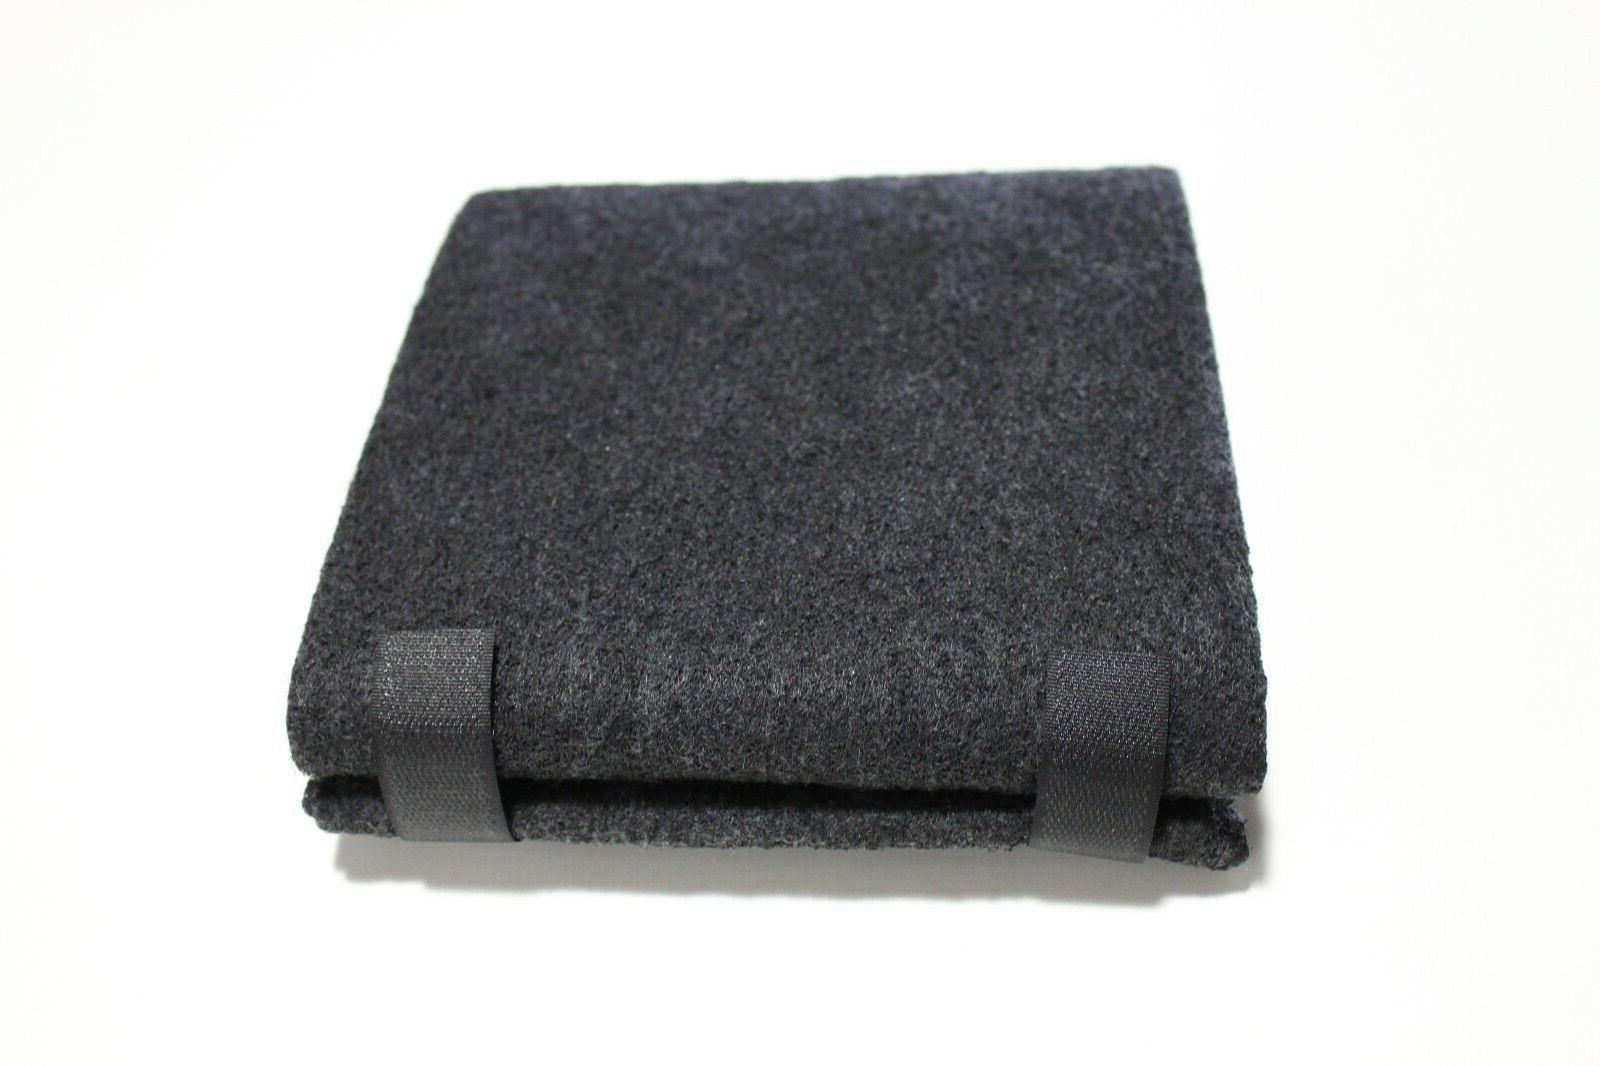 1 x cut to fit carbon pad